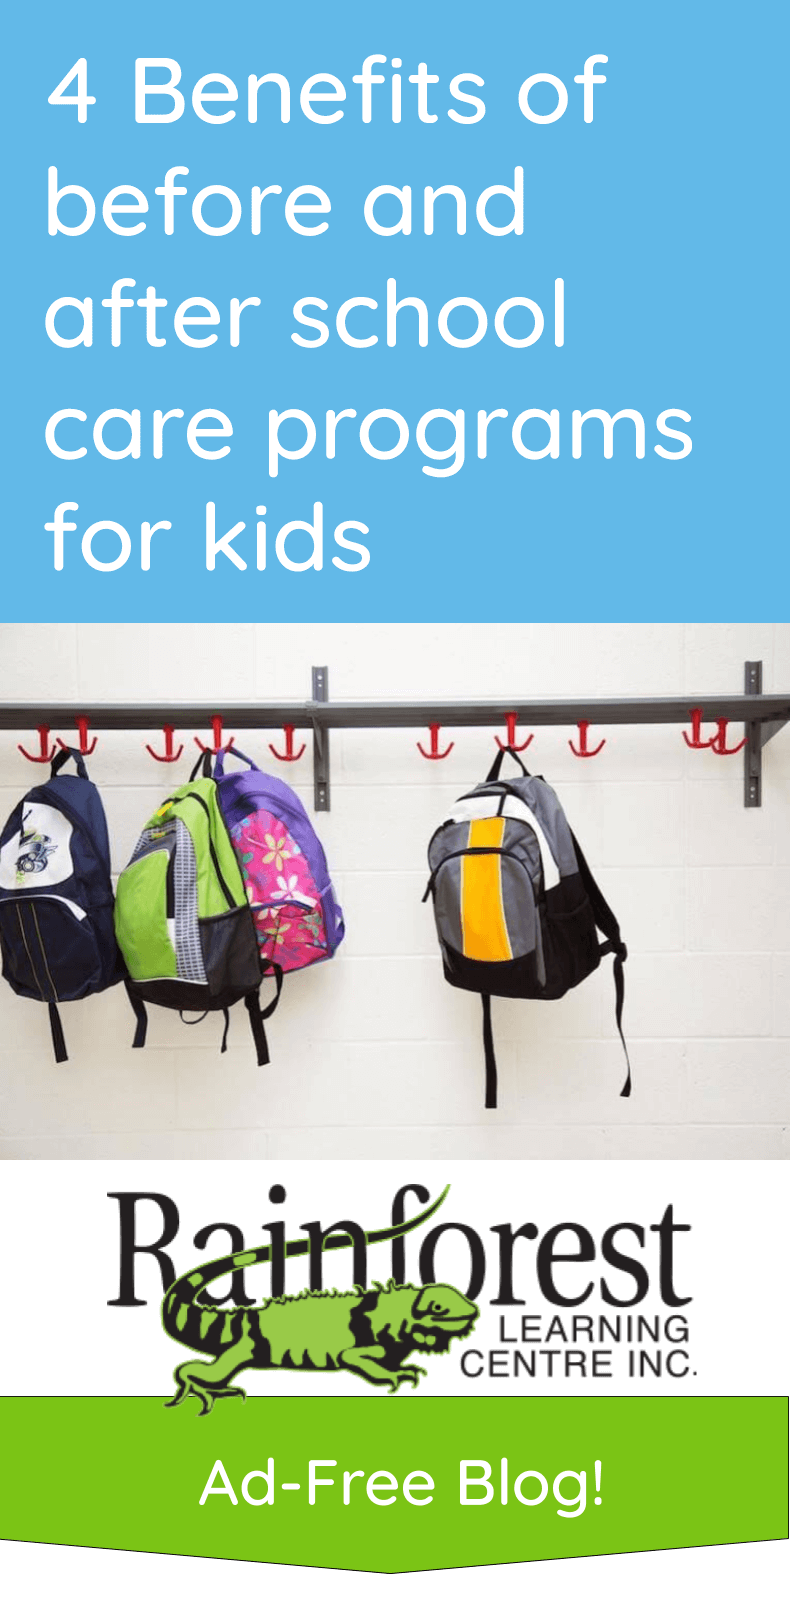 4 Benefits of before and after school care programs for kids - article pinterest image